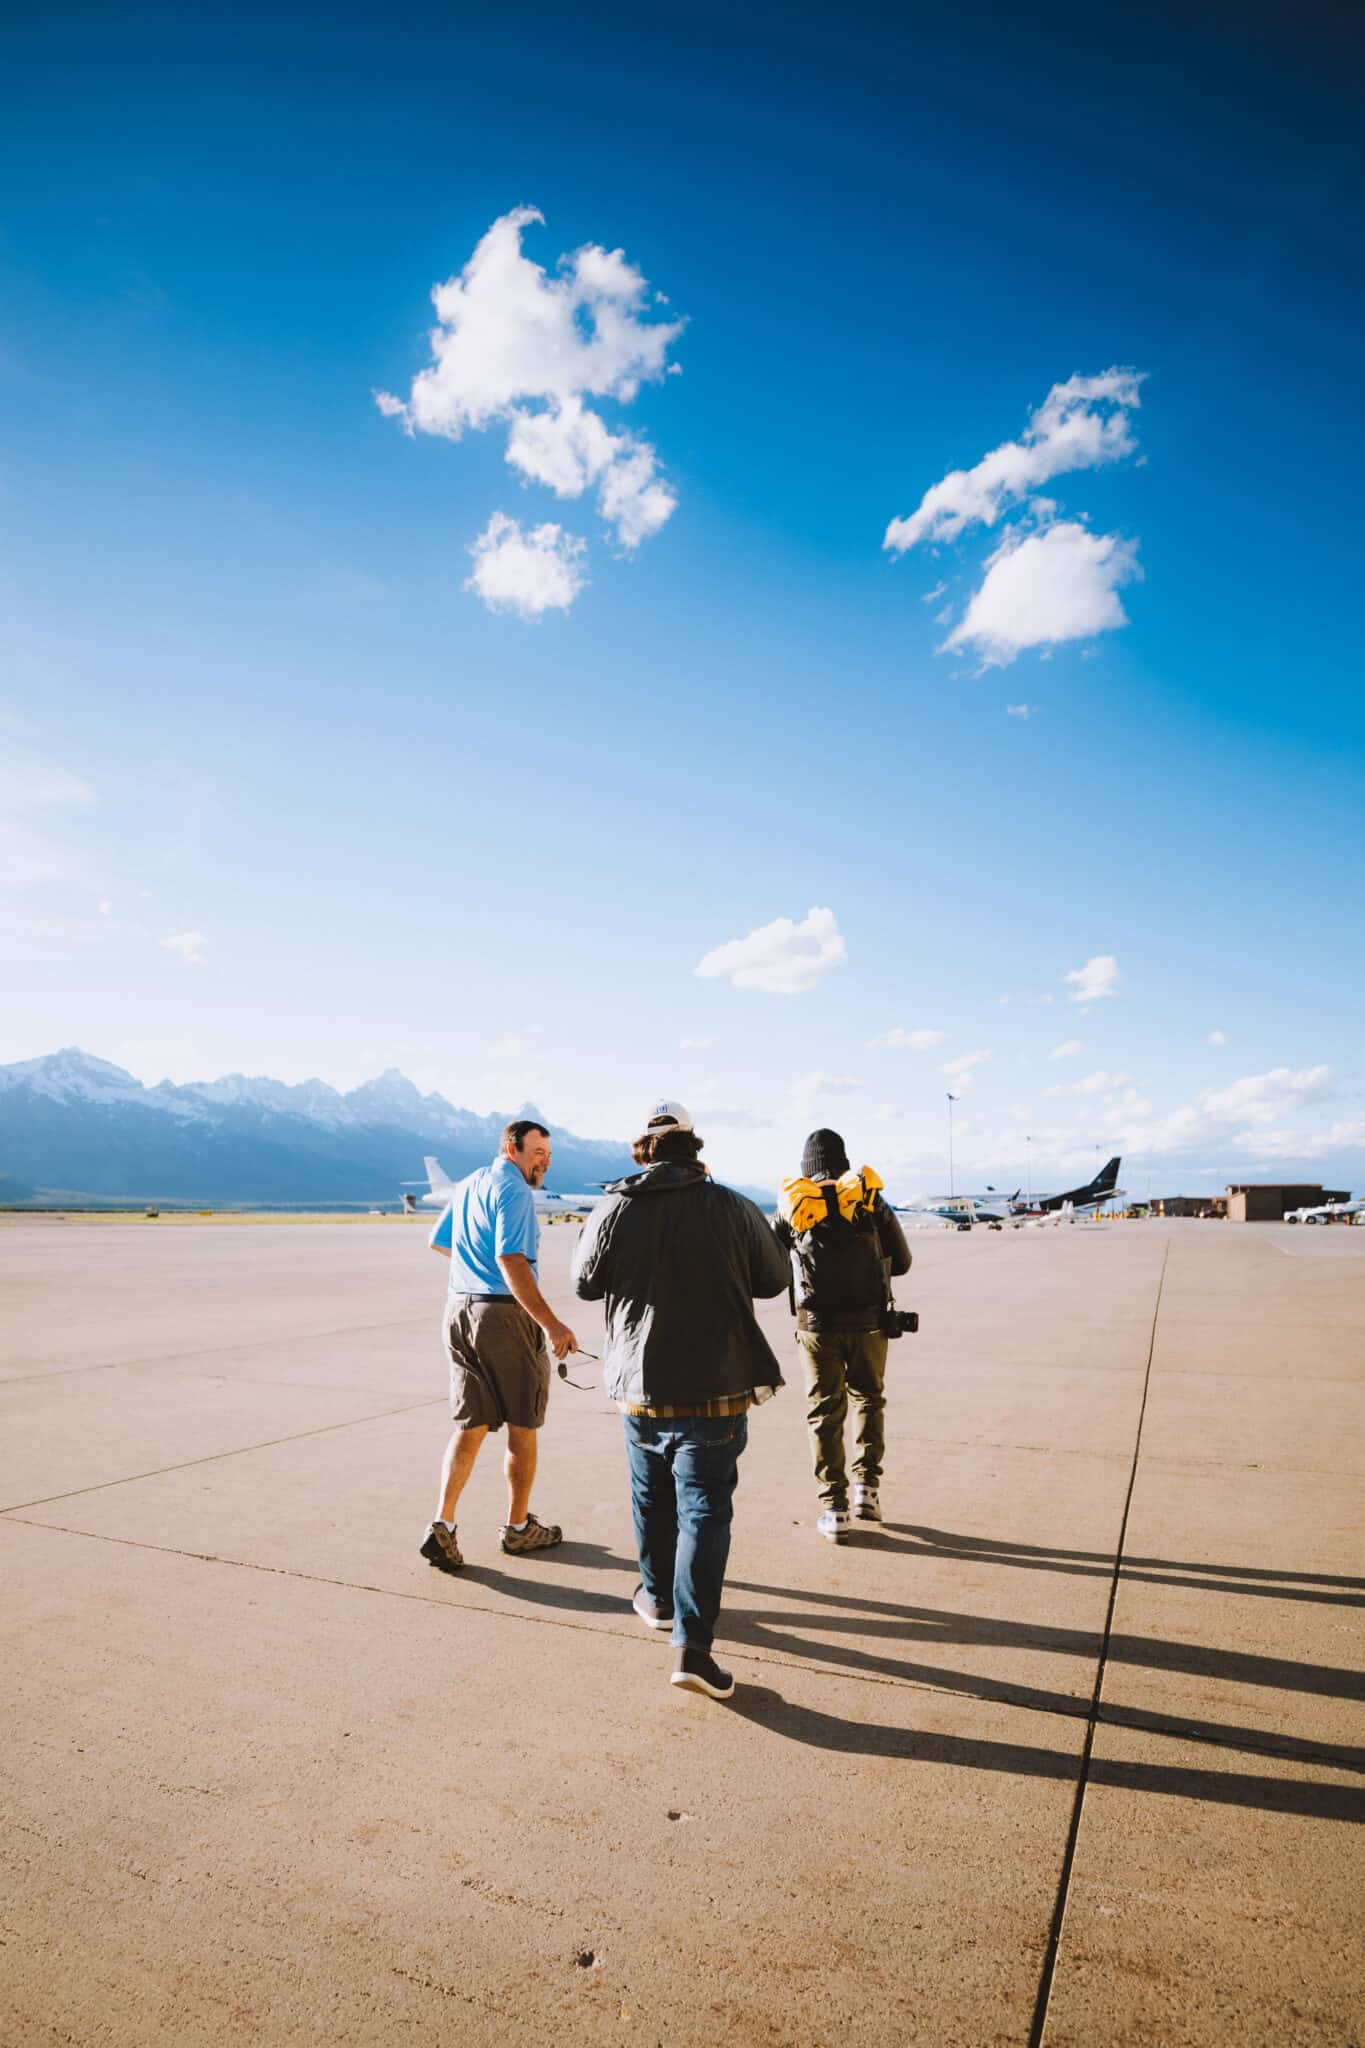 Pilot and guests walking to plane - TheMandagies.com